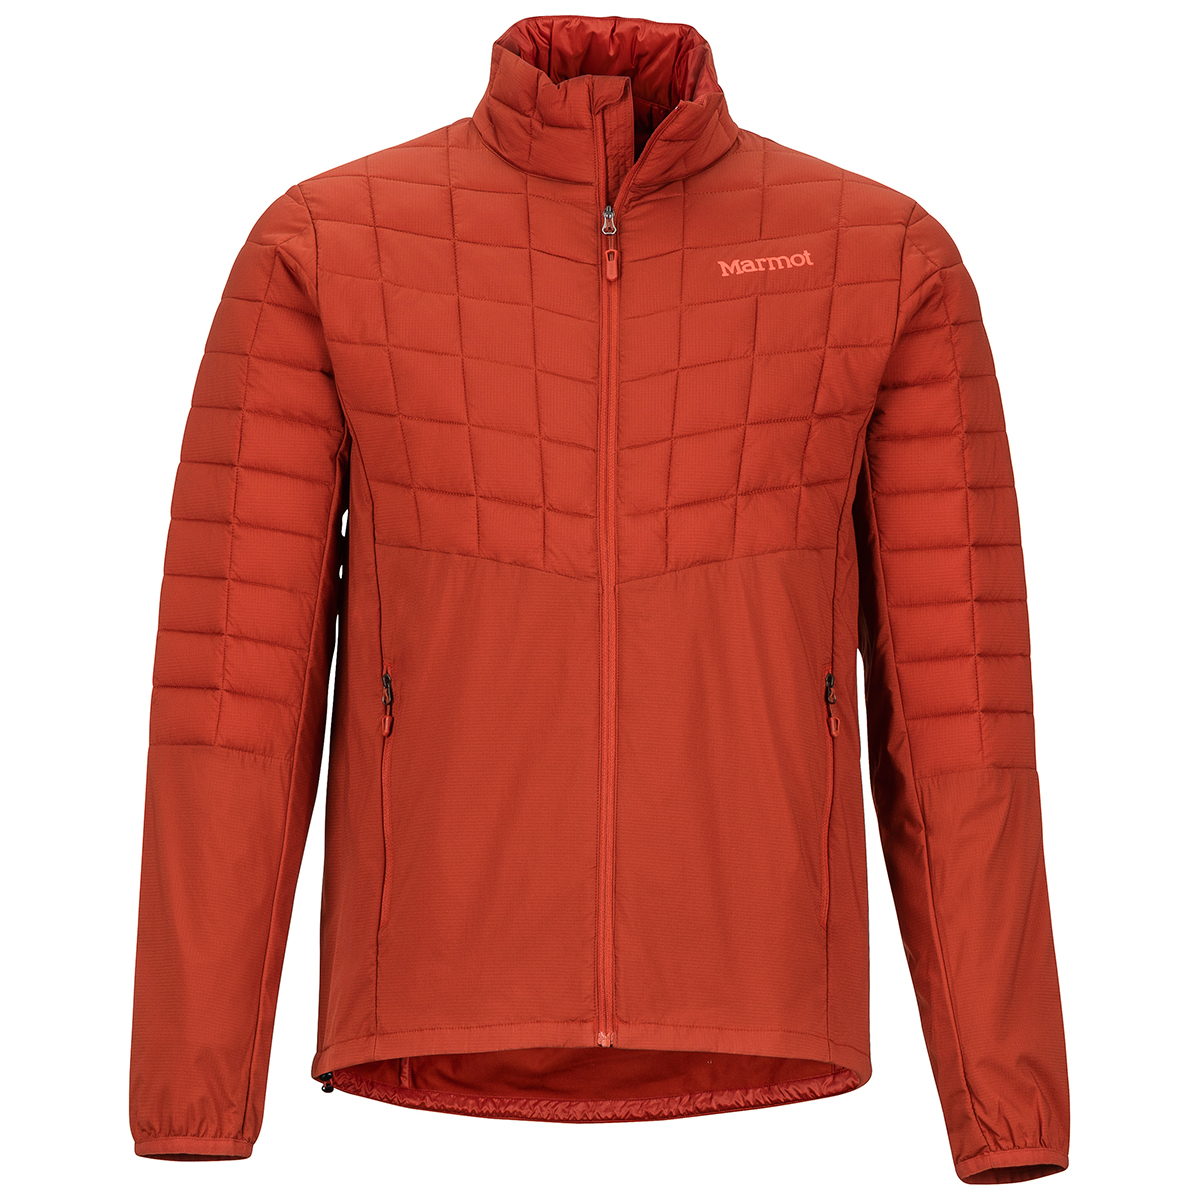 Marmot Men's Featherless Hybrid Jacket - Orange, M